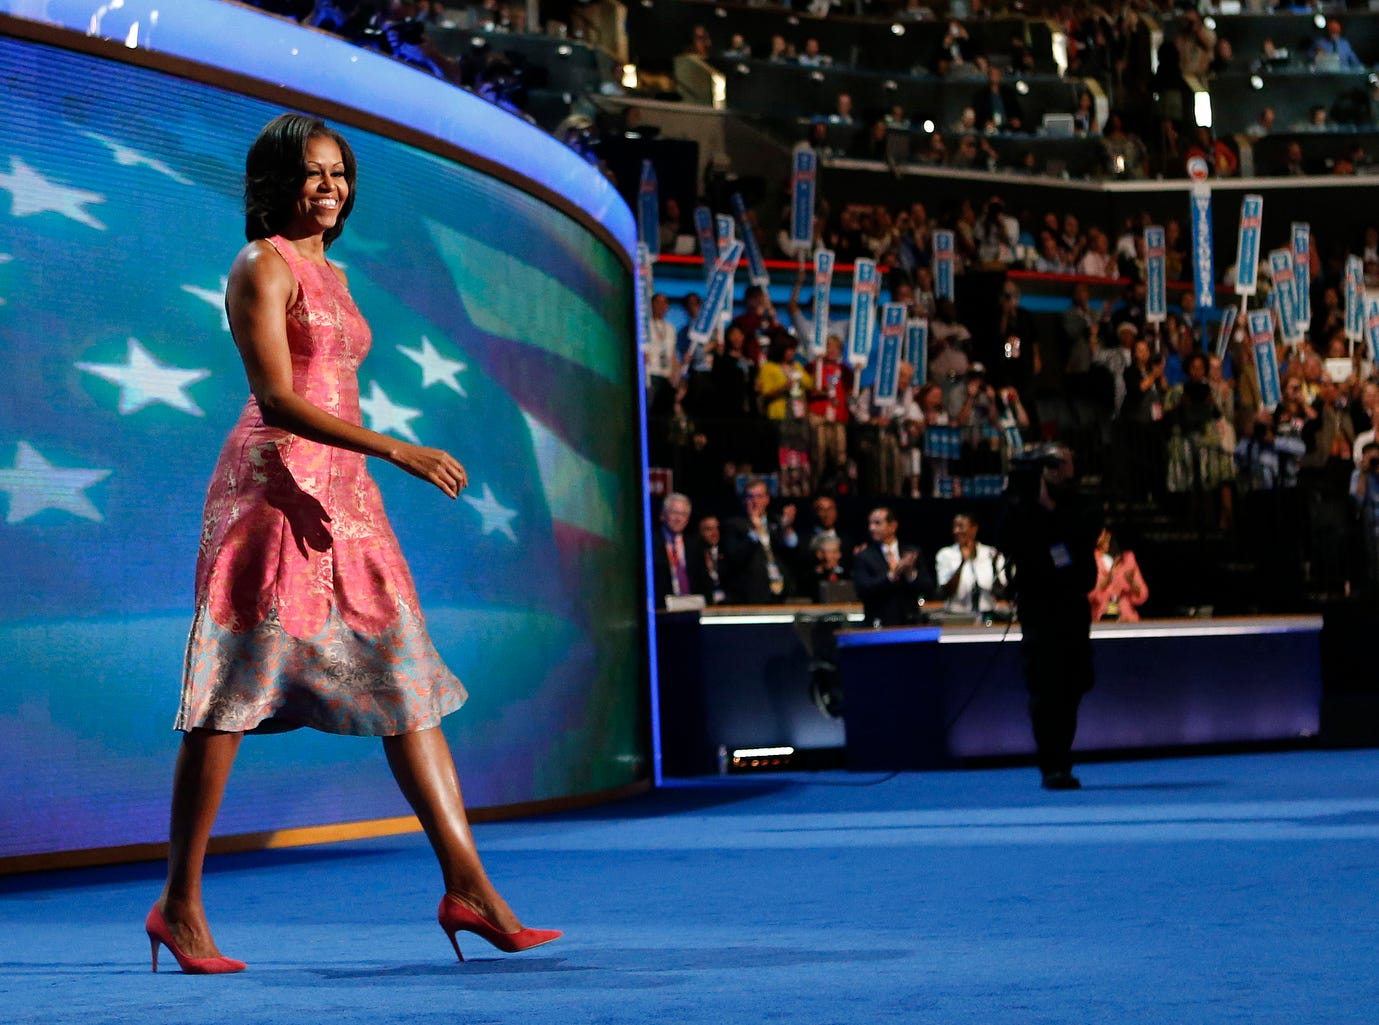 FILE - In this Sept. 4, 2012 file photo, first lady Michelle Obama, dressed in a Tracy Reese pink silk jaquard dress, walks on the stage at the Democratic National Convention in Charlotte, N.C. Reese, who hails from Detroit, is clearly one of the first lady's favored designers as Obama has been photographed in her clothes between 20 and 30 times. (AP Photo/Jae C. Hong, File) ORG XMIT: WX431